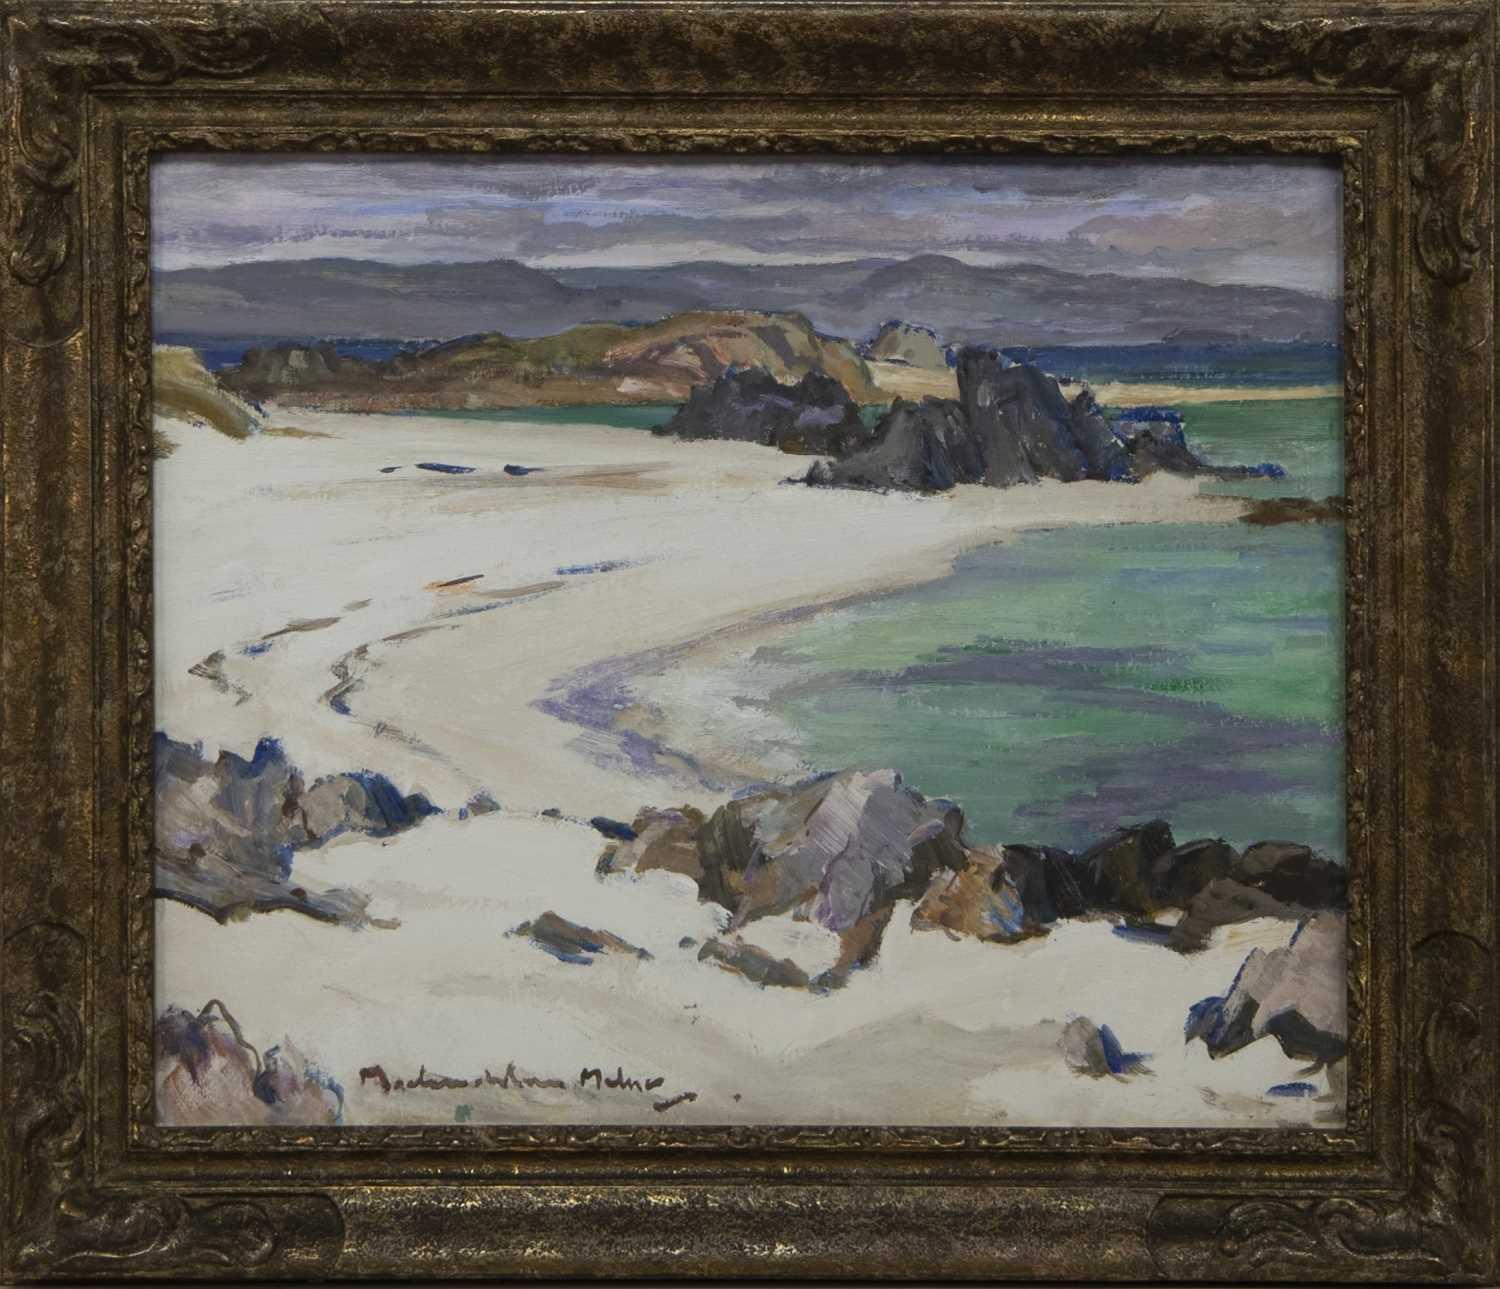 Lot 2005 - THE GREEN POOL, IONA, AN OIL BY JOHN MACLAUCHLAN MILNE